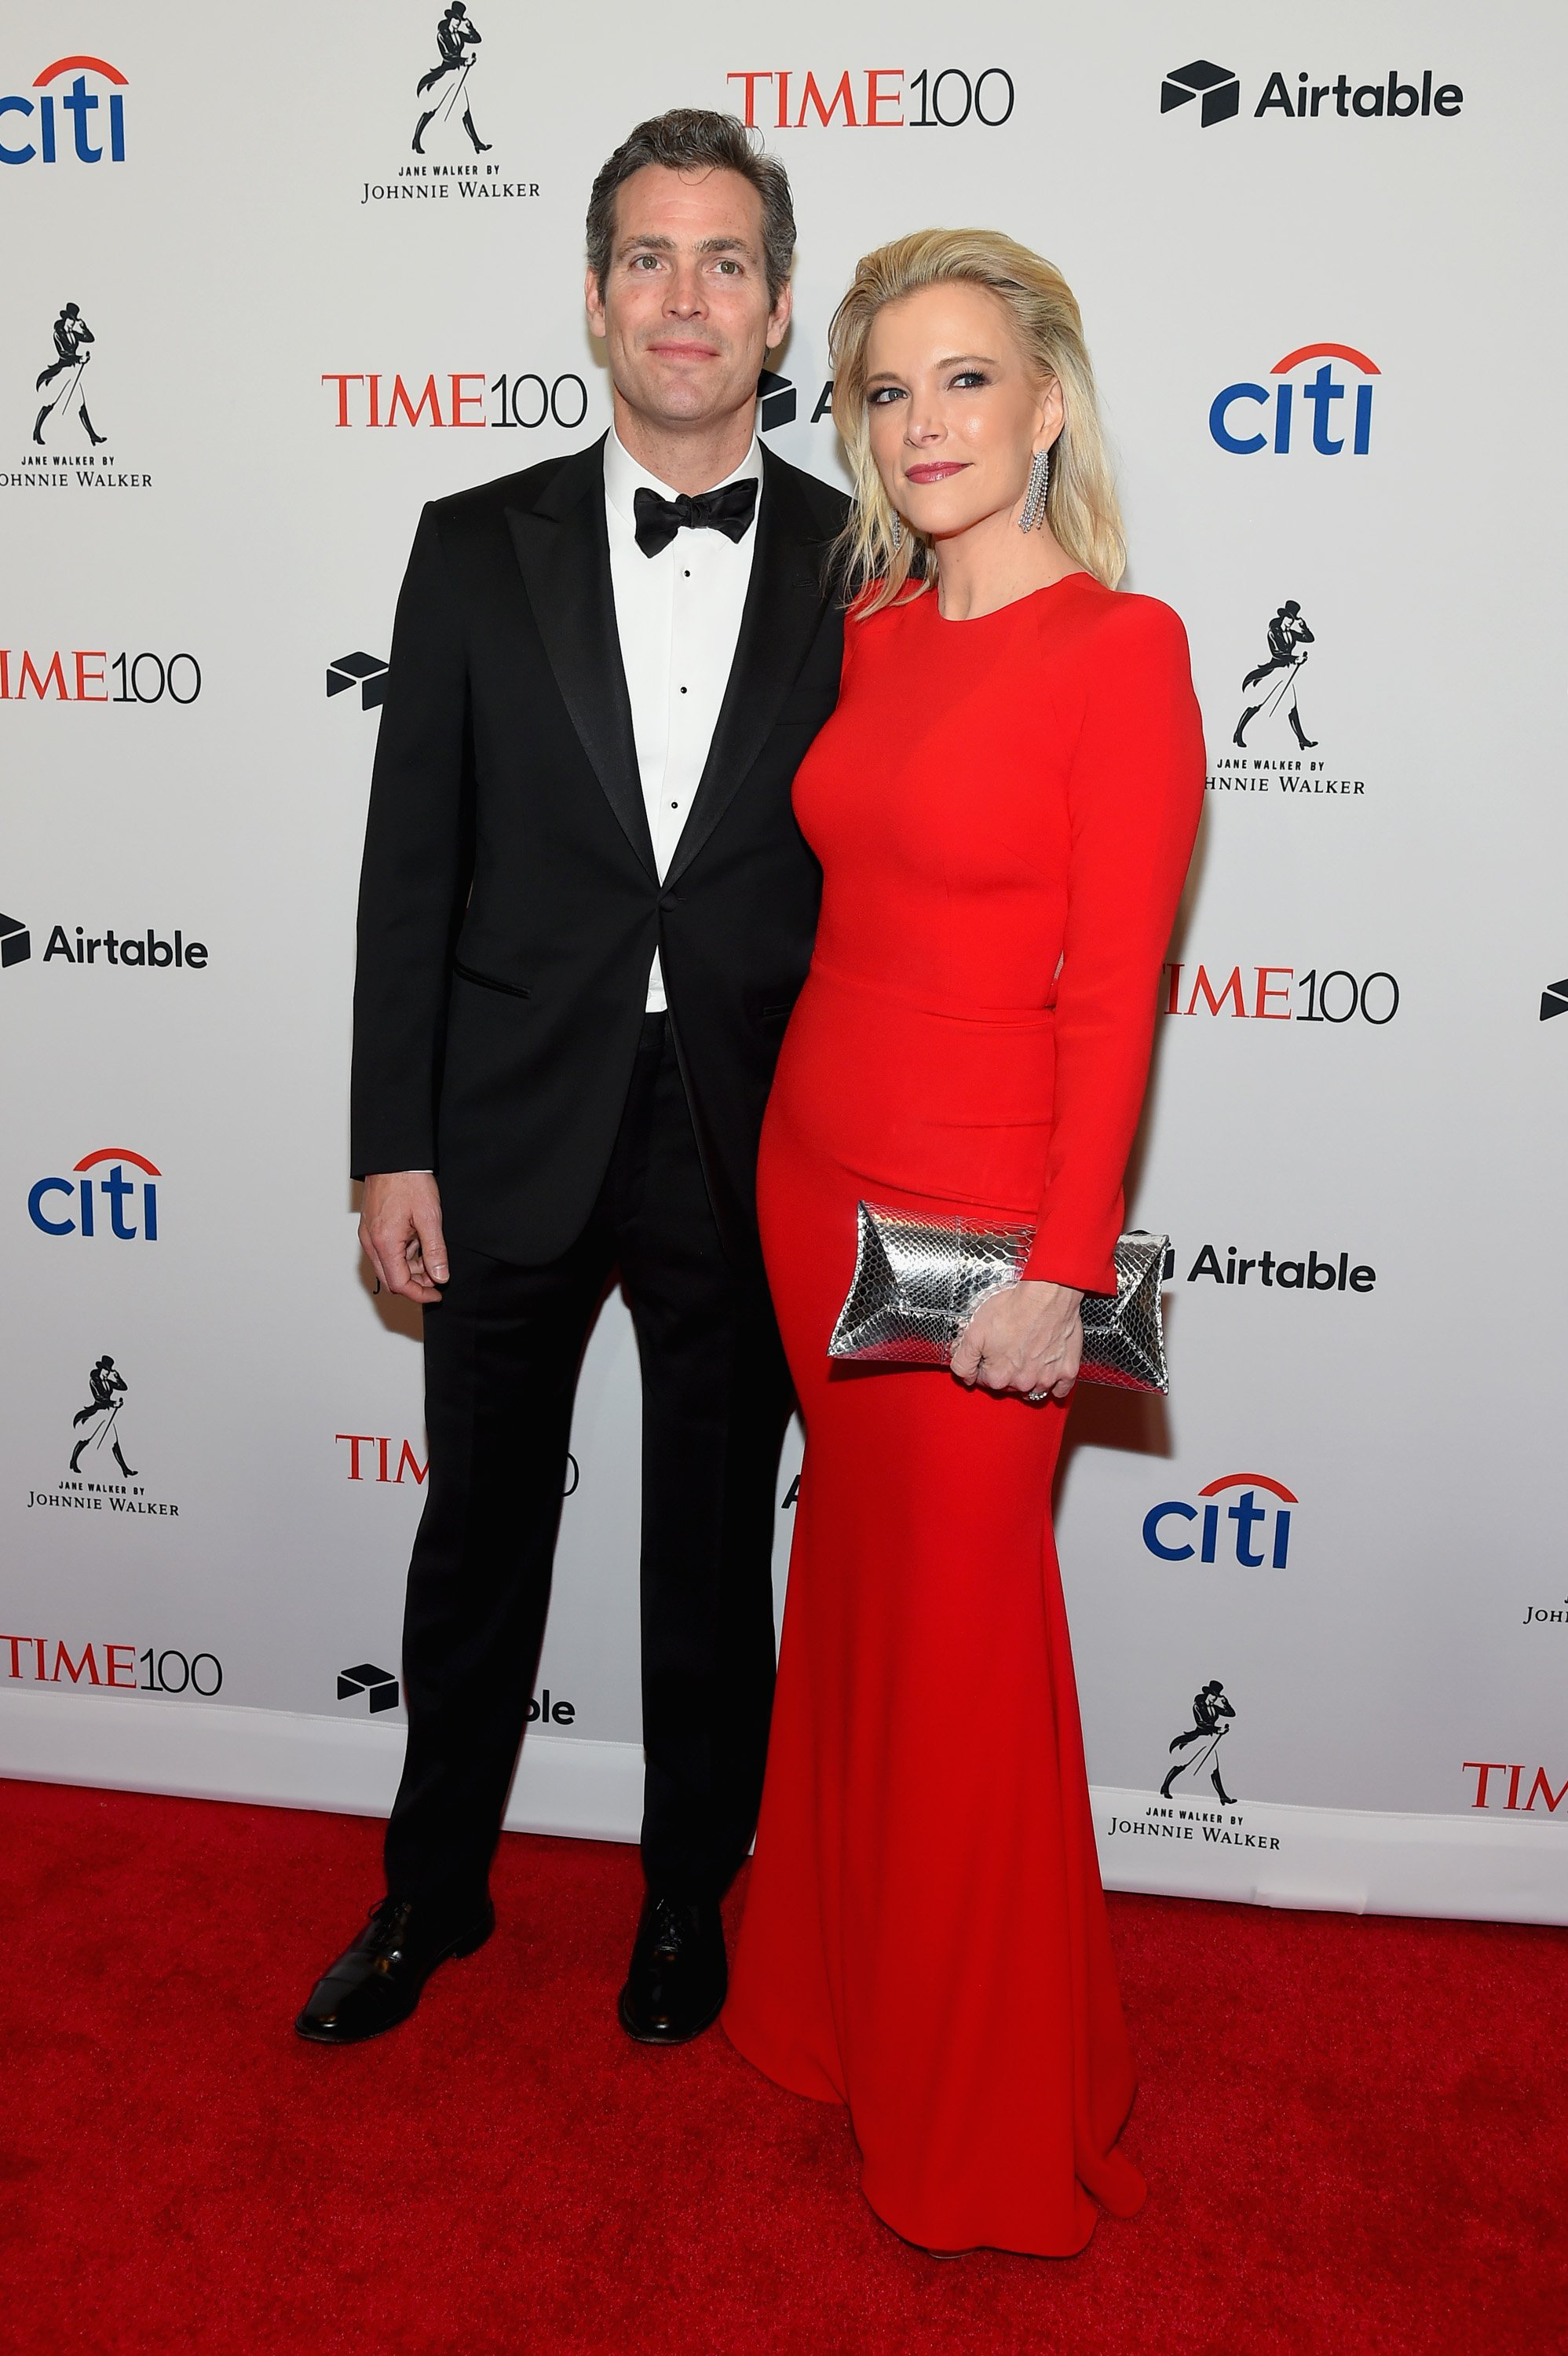 Douglas Brunt and Megyn Kelly attend the 2018 Time 100 Gala at Jazz at Lincoln Center on April 24, 2018, in New York City. | Source: Getty Images.